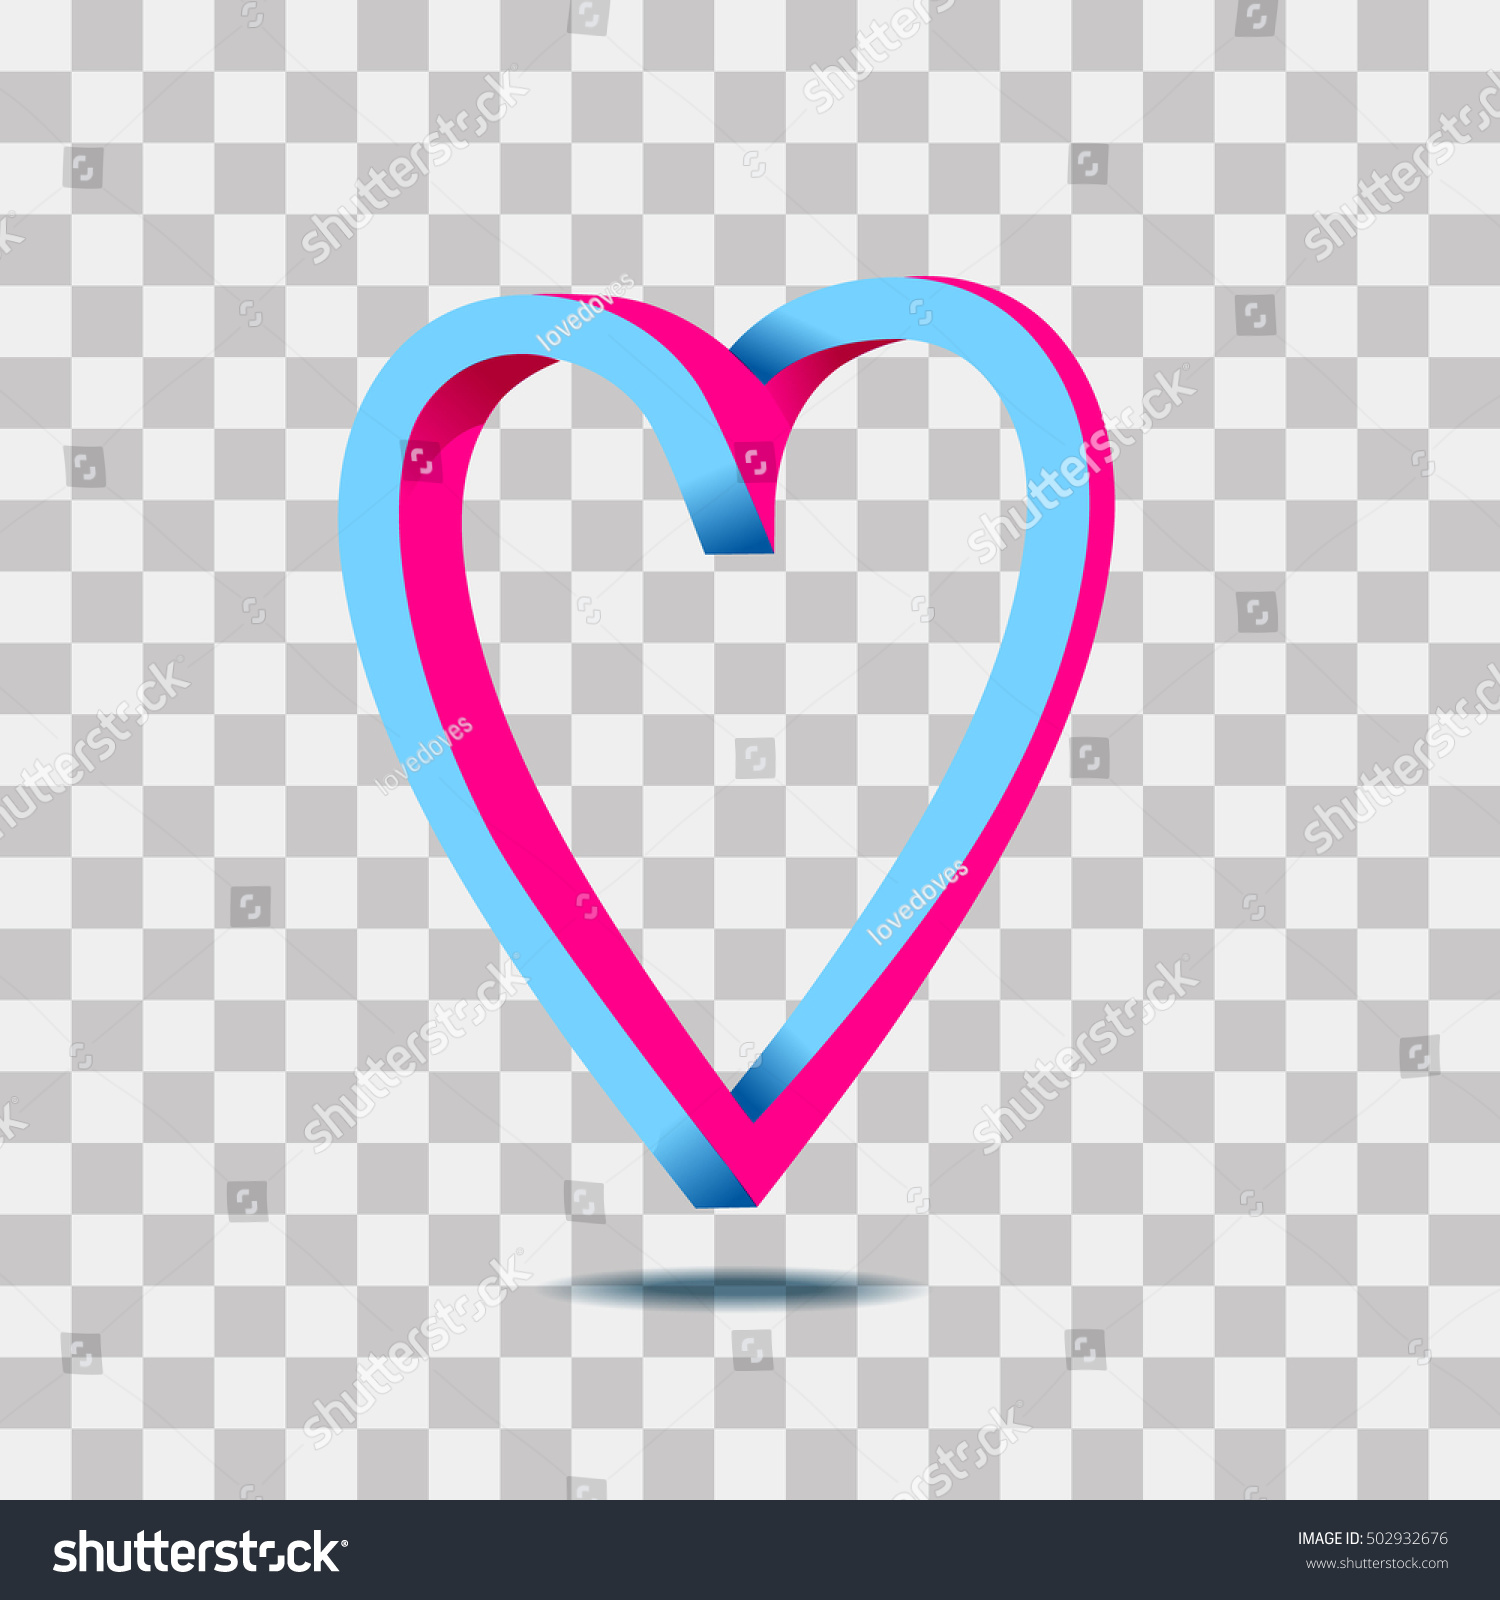 Illustration 3d Isometric Love Symbol Pink And Blue Color Heart Icon